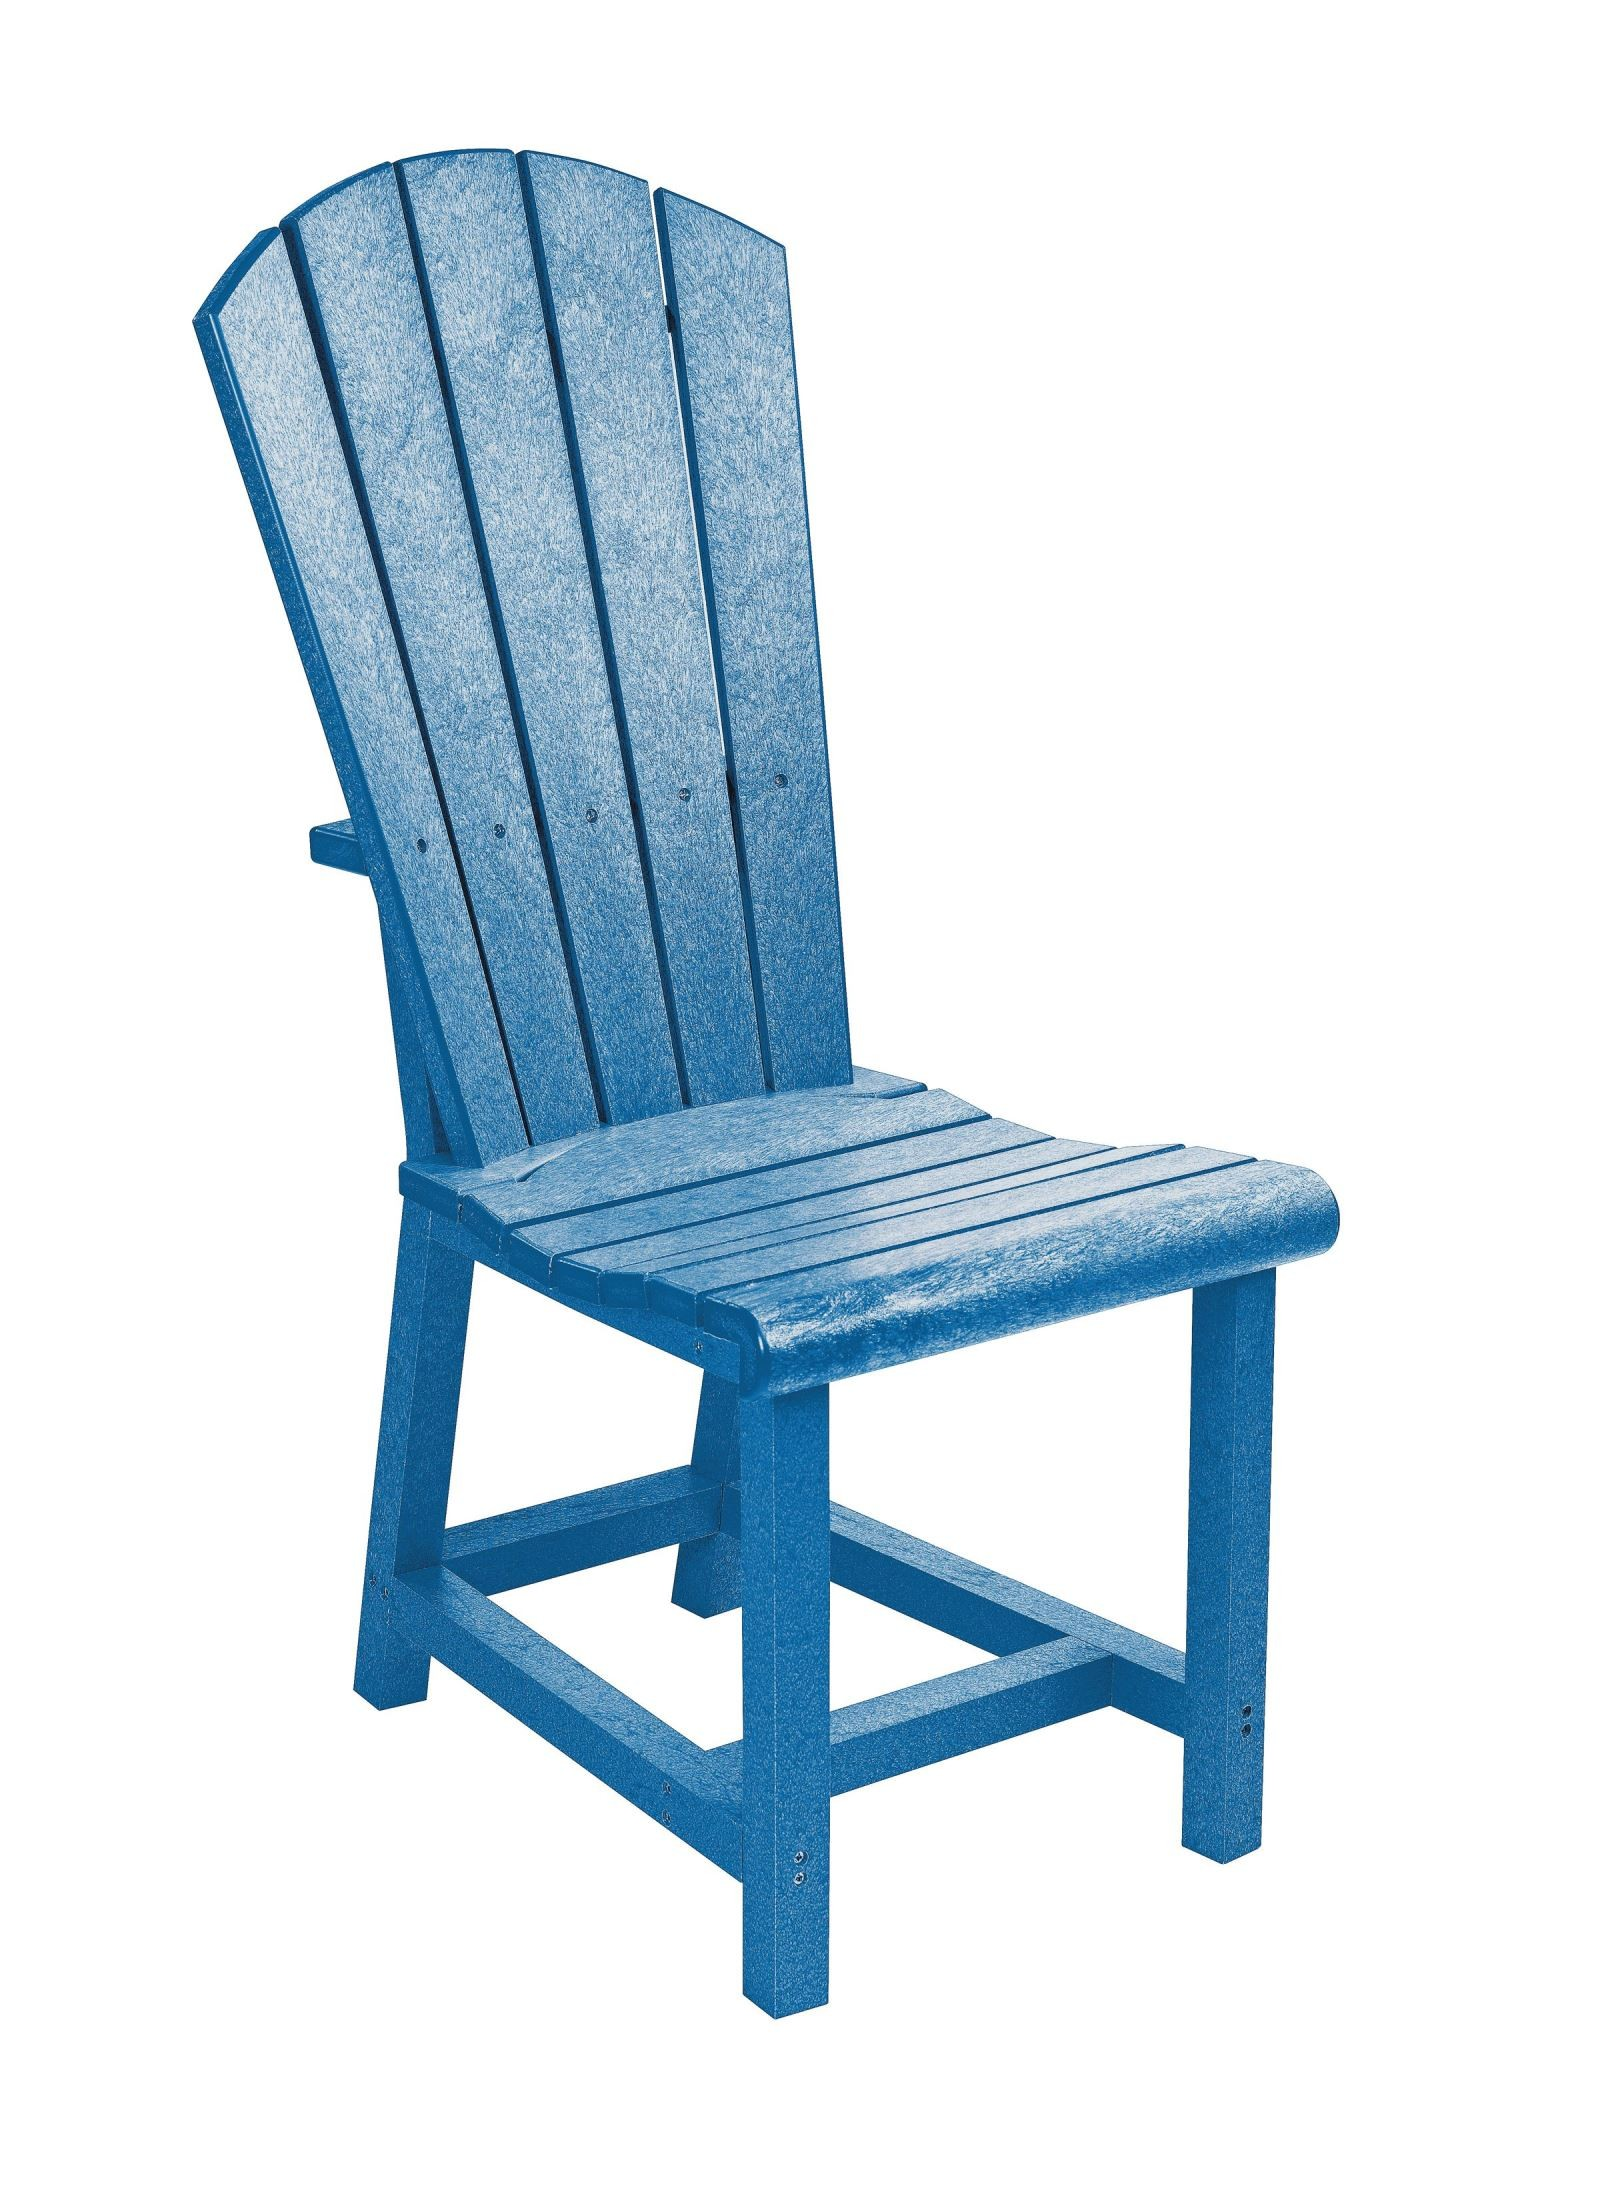 generations blue adirondack dining side chair from cr plastic c11 03